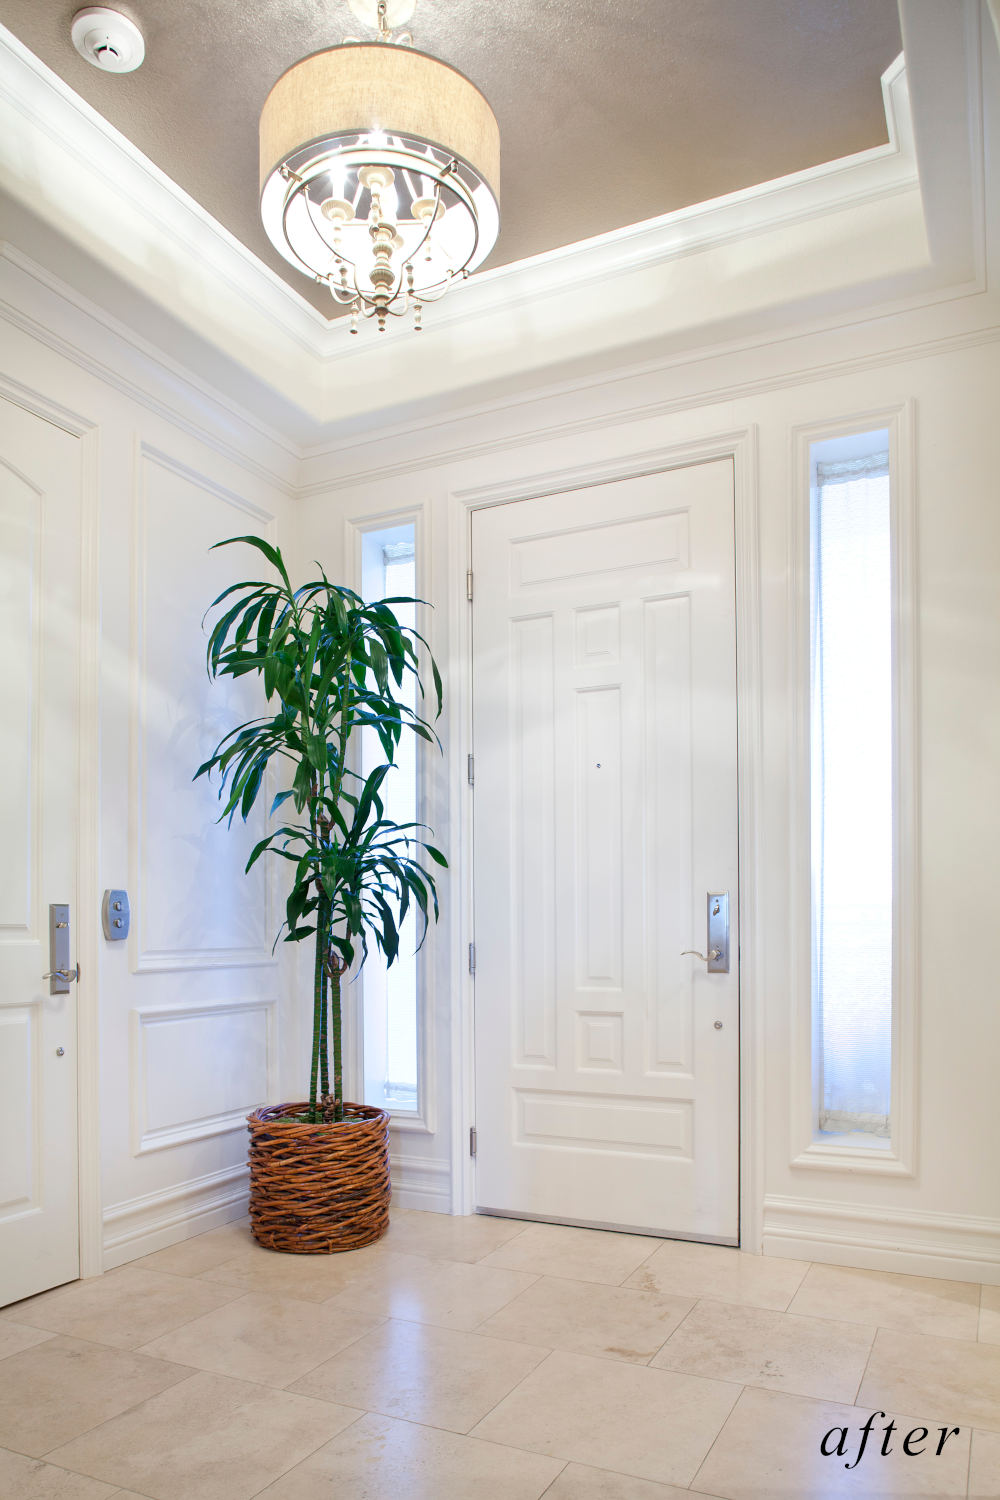 After remodel image: newly remodeled home entrance with white wood molding and wood paneling.